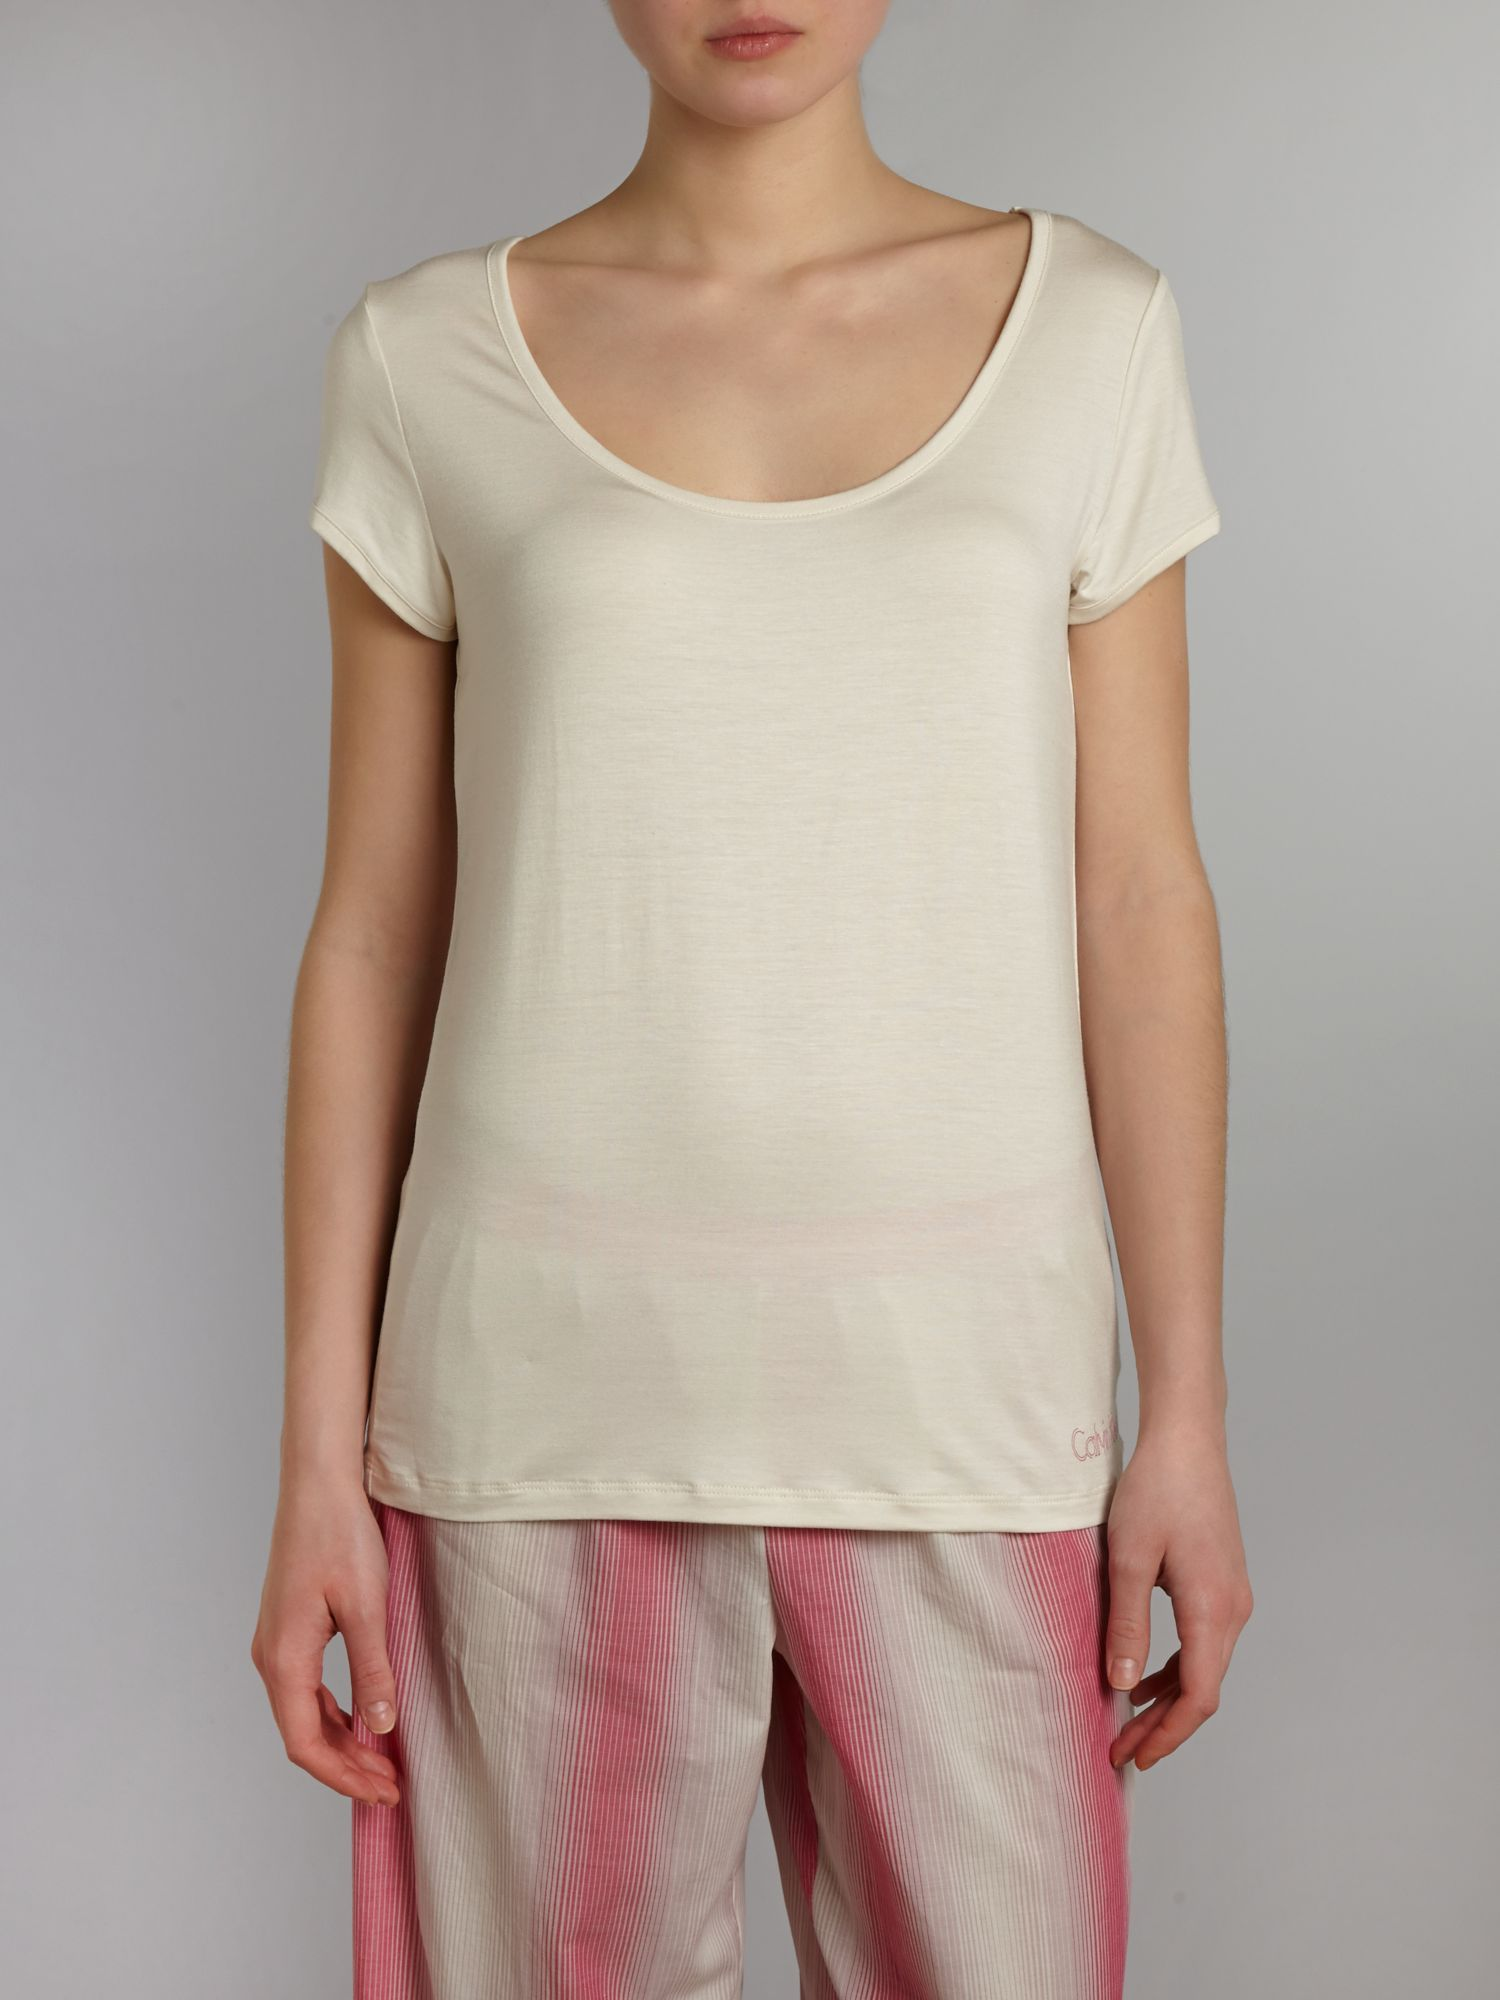 Modal coordinating tee scoop neck cap sleeve top